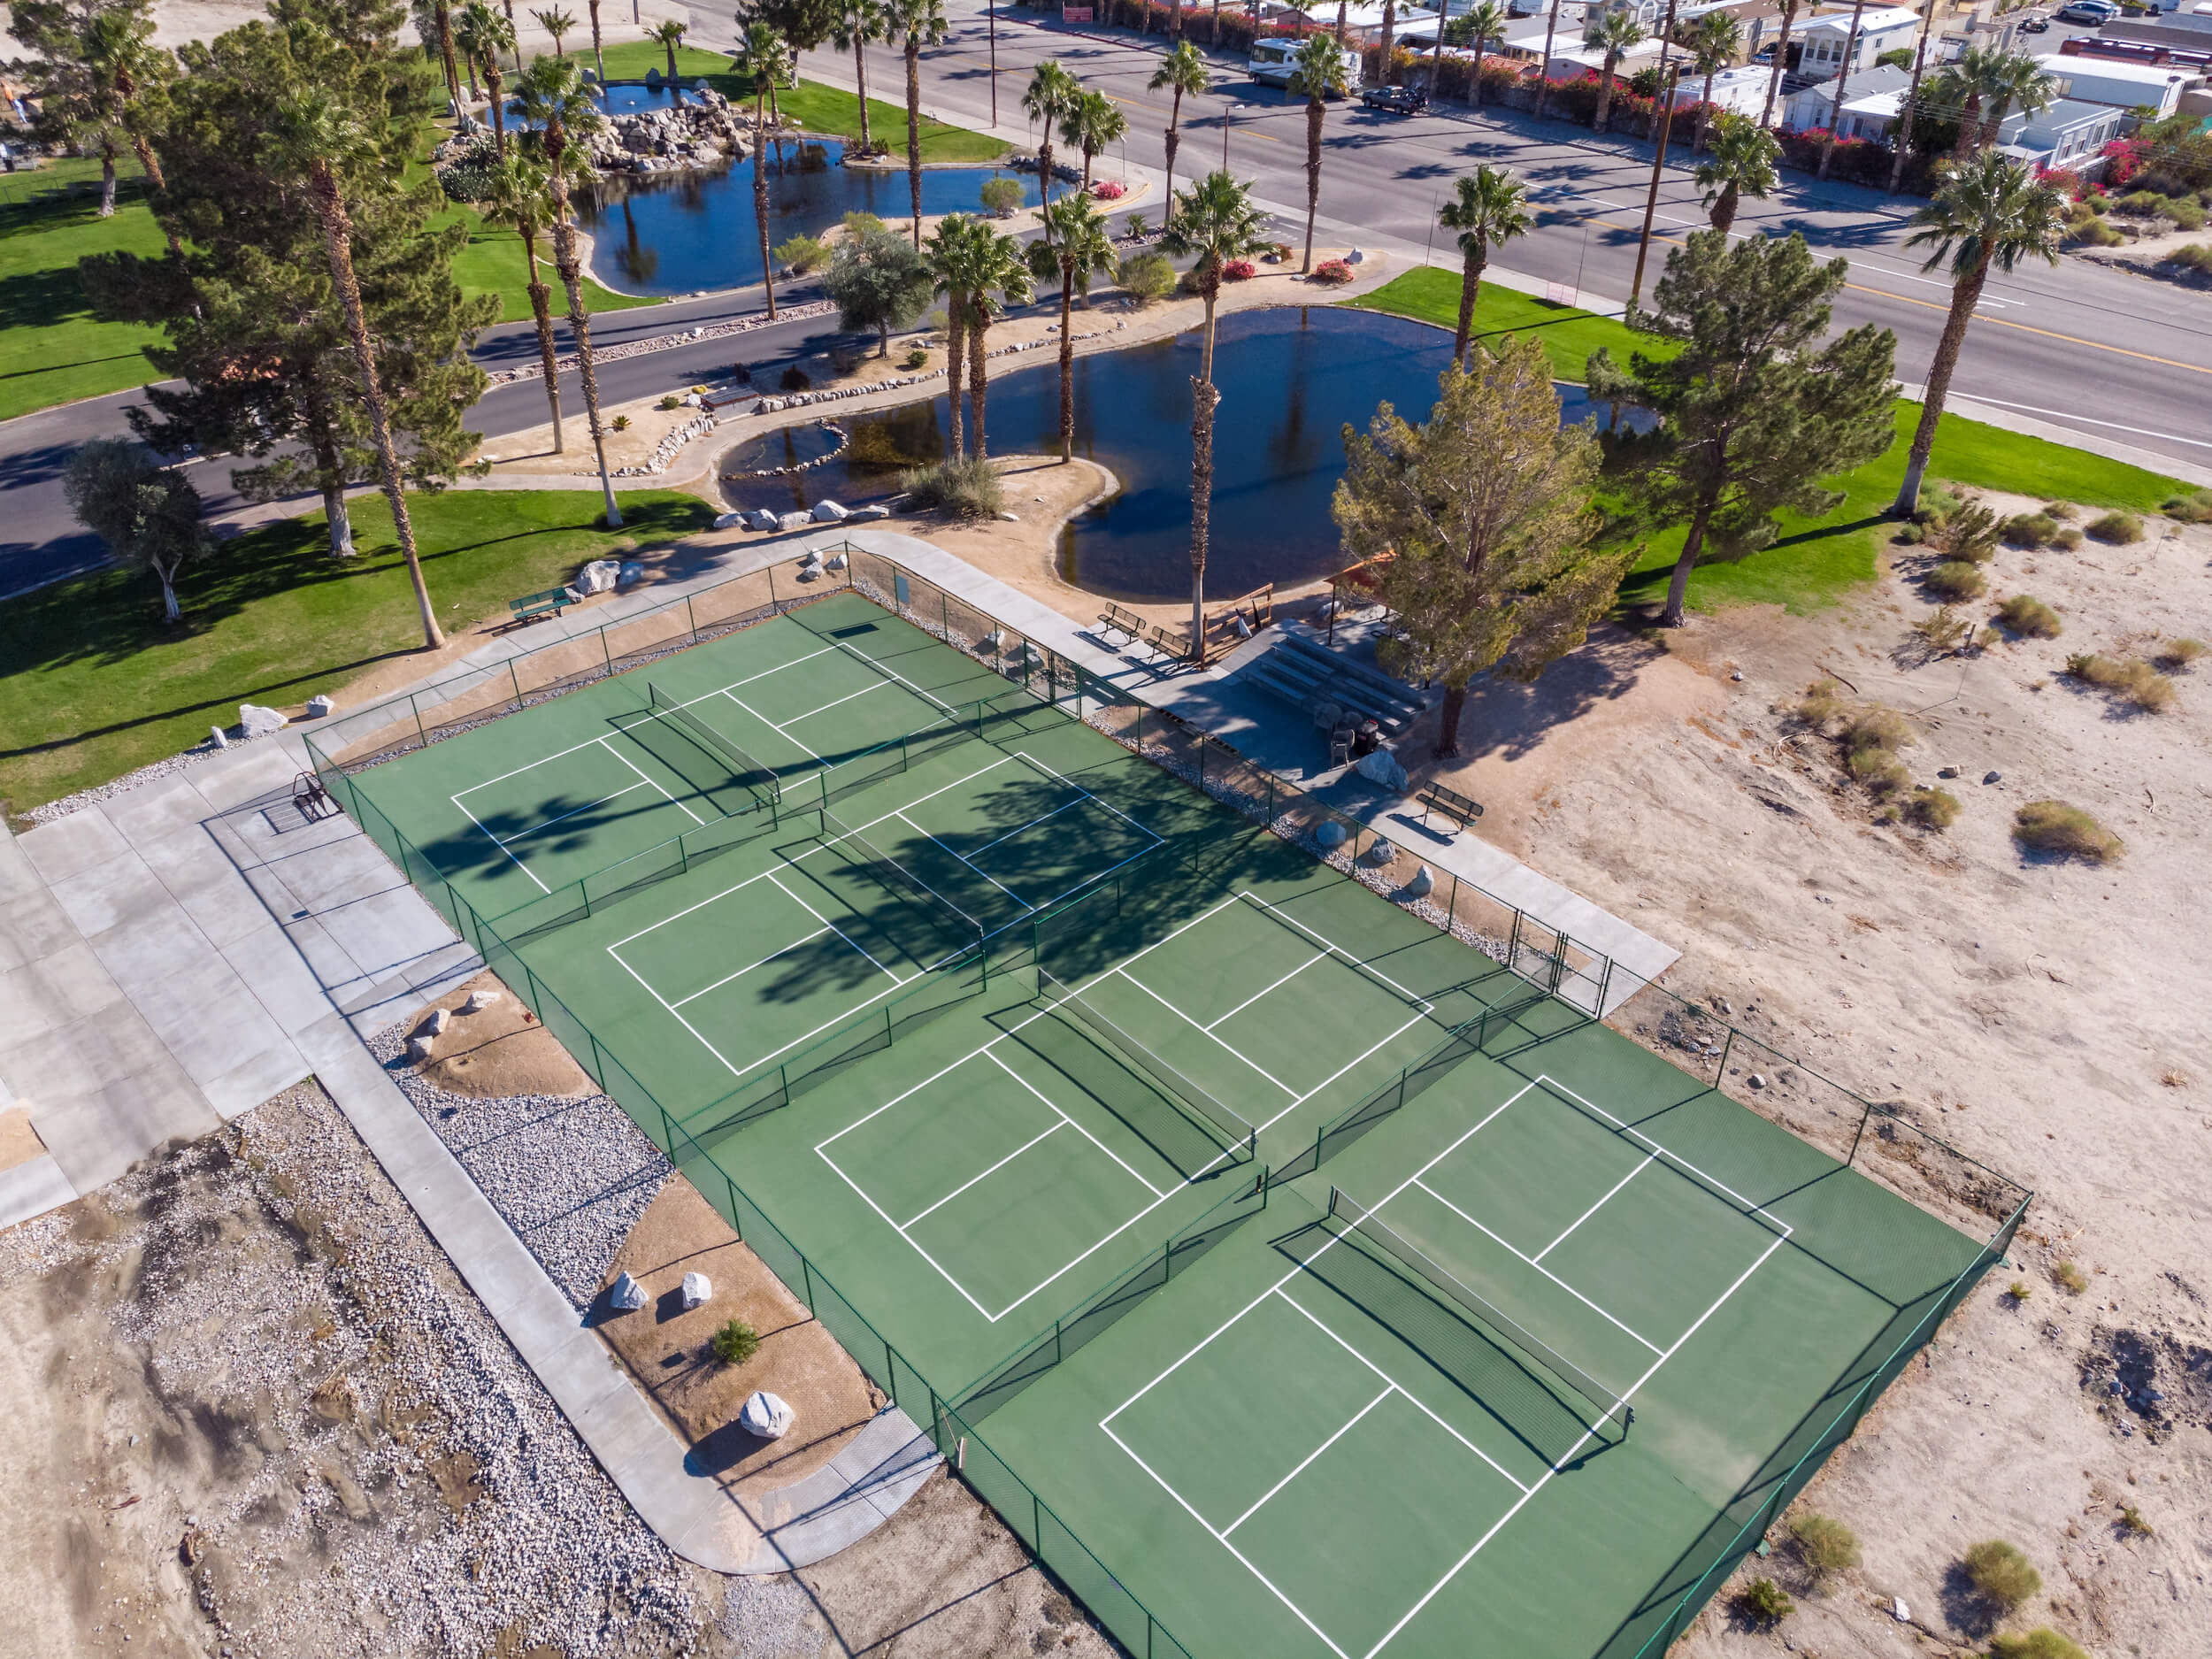 Coming for USAPA? - Bring your RV down for the National Pickleball Championships held in Indian Wells. Warm up on our courts and cool down in our natural mineral hot springs. BOOK YOUR RV SITE